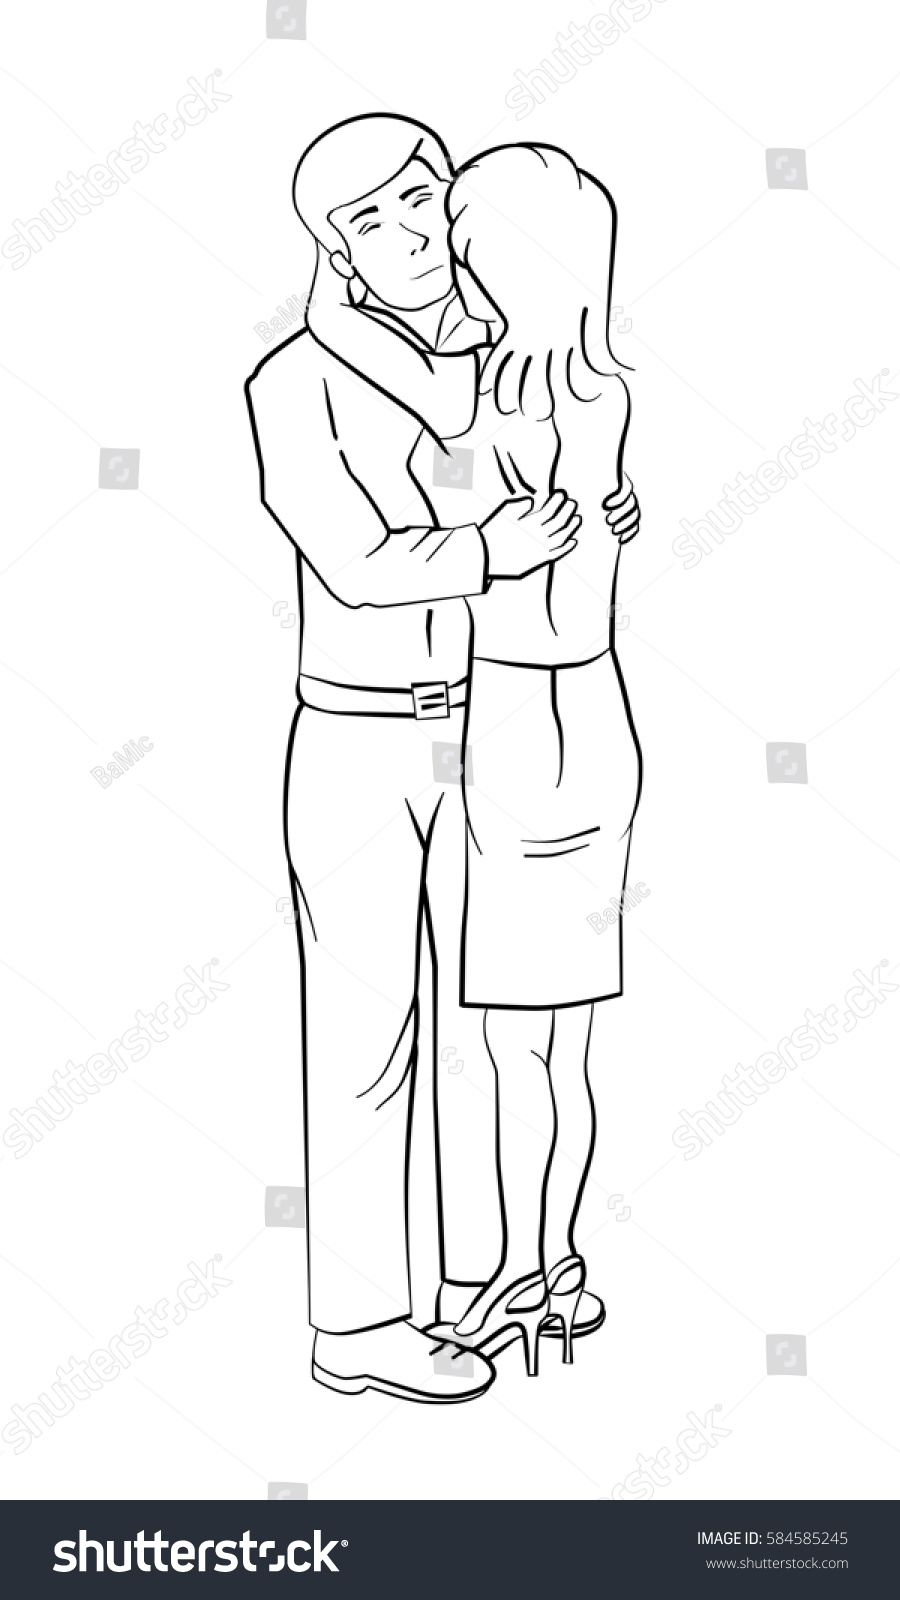 Couple outline drawing full body of a man and a woman hugging each other